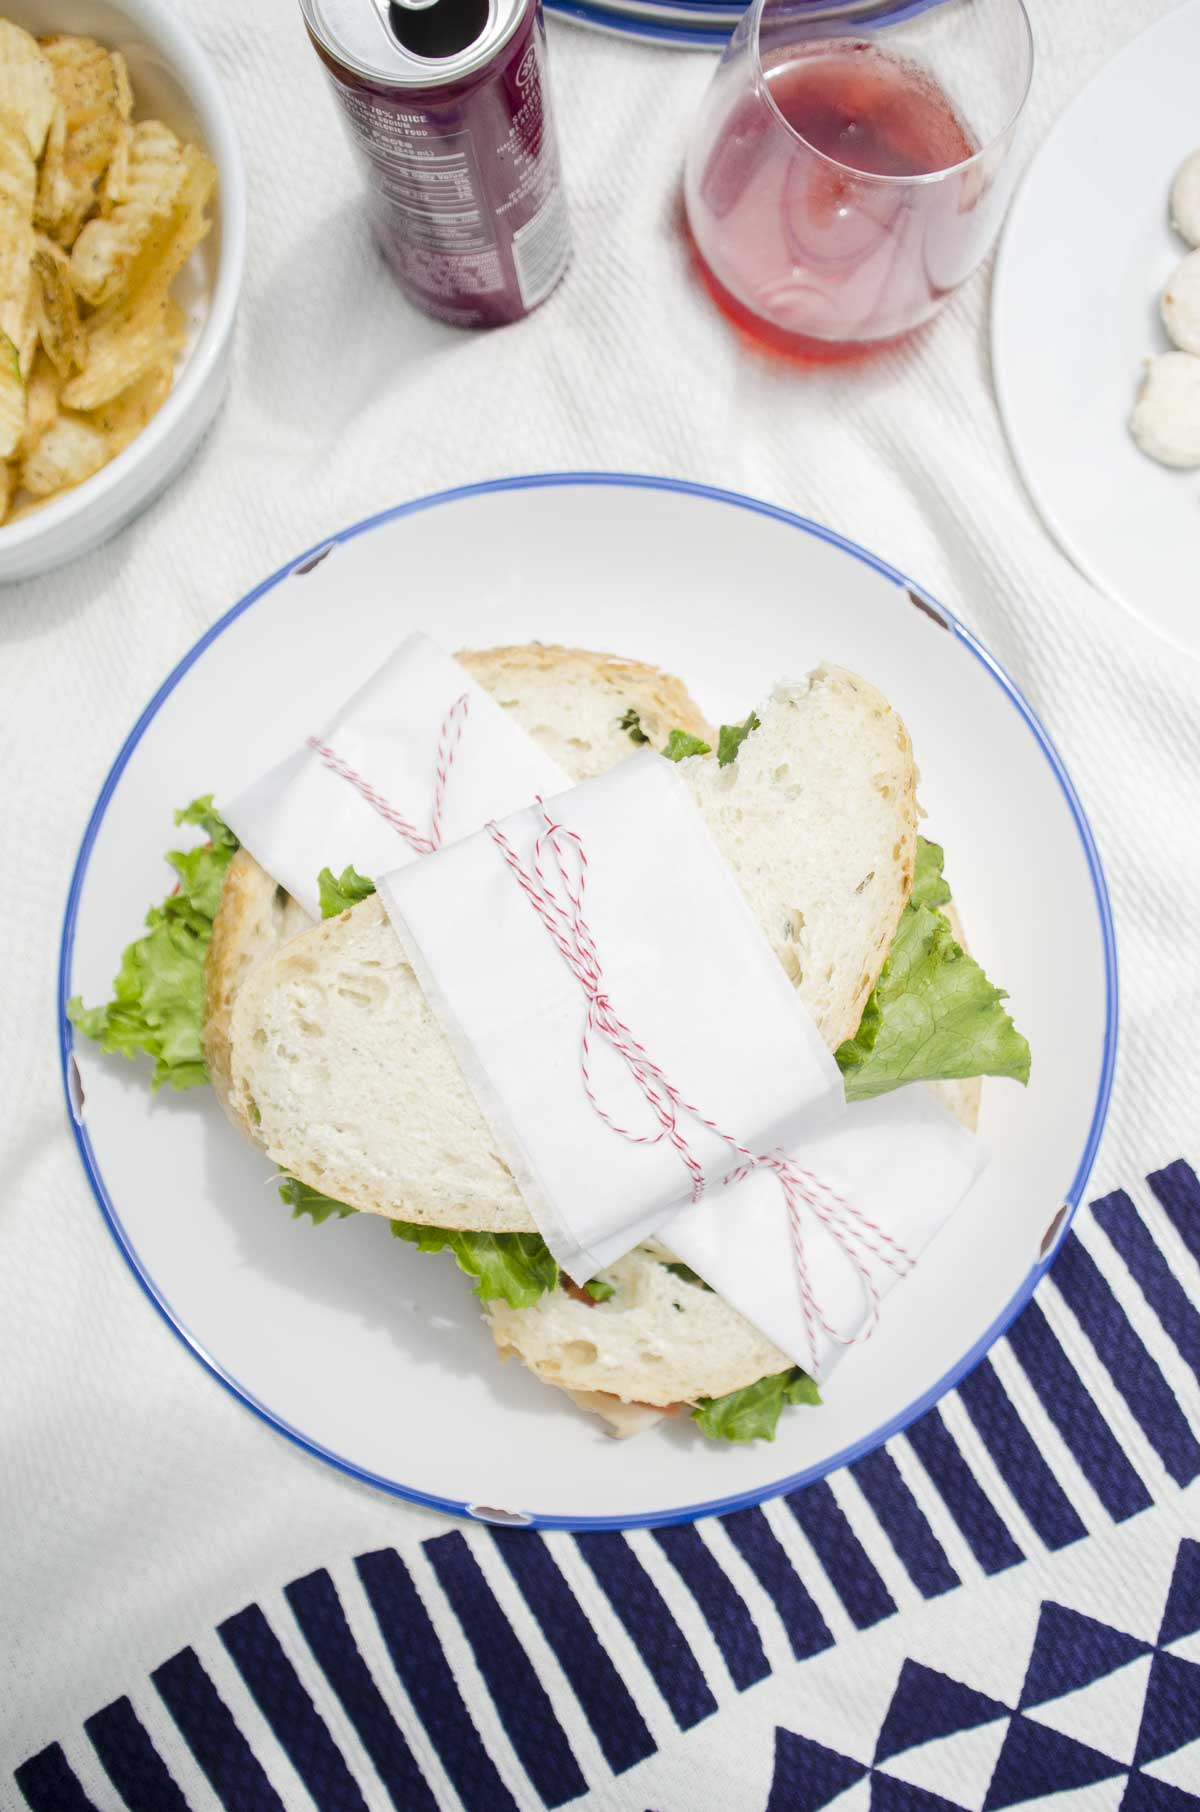 Modern picnic lunch with geometric picnic blanket on @thouswellblog